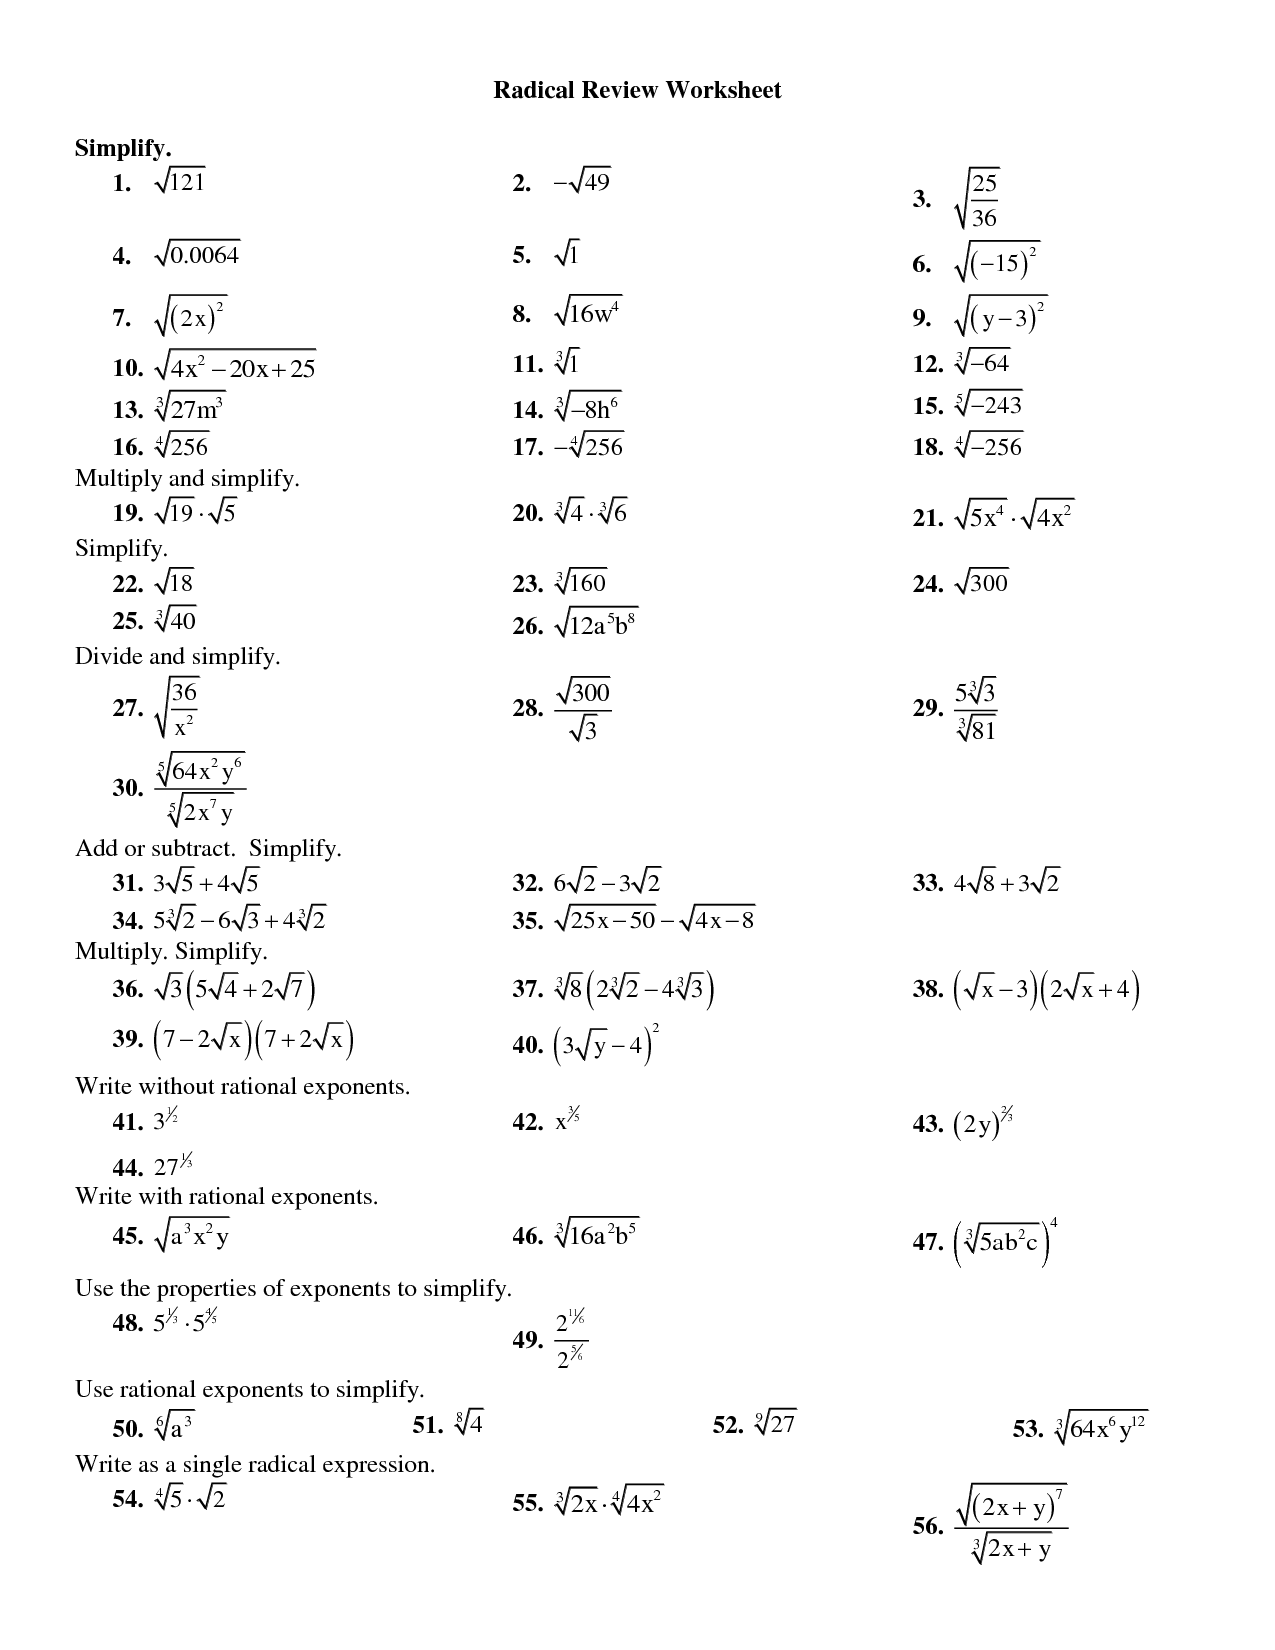 Dividing Radicals Worksheet